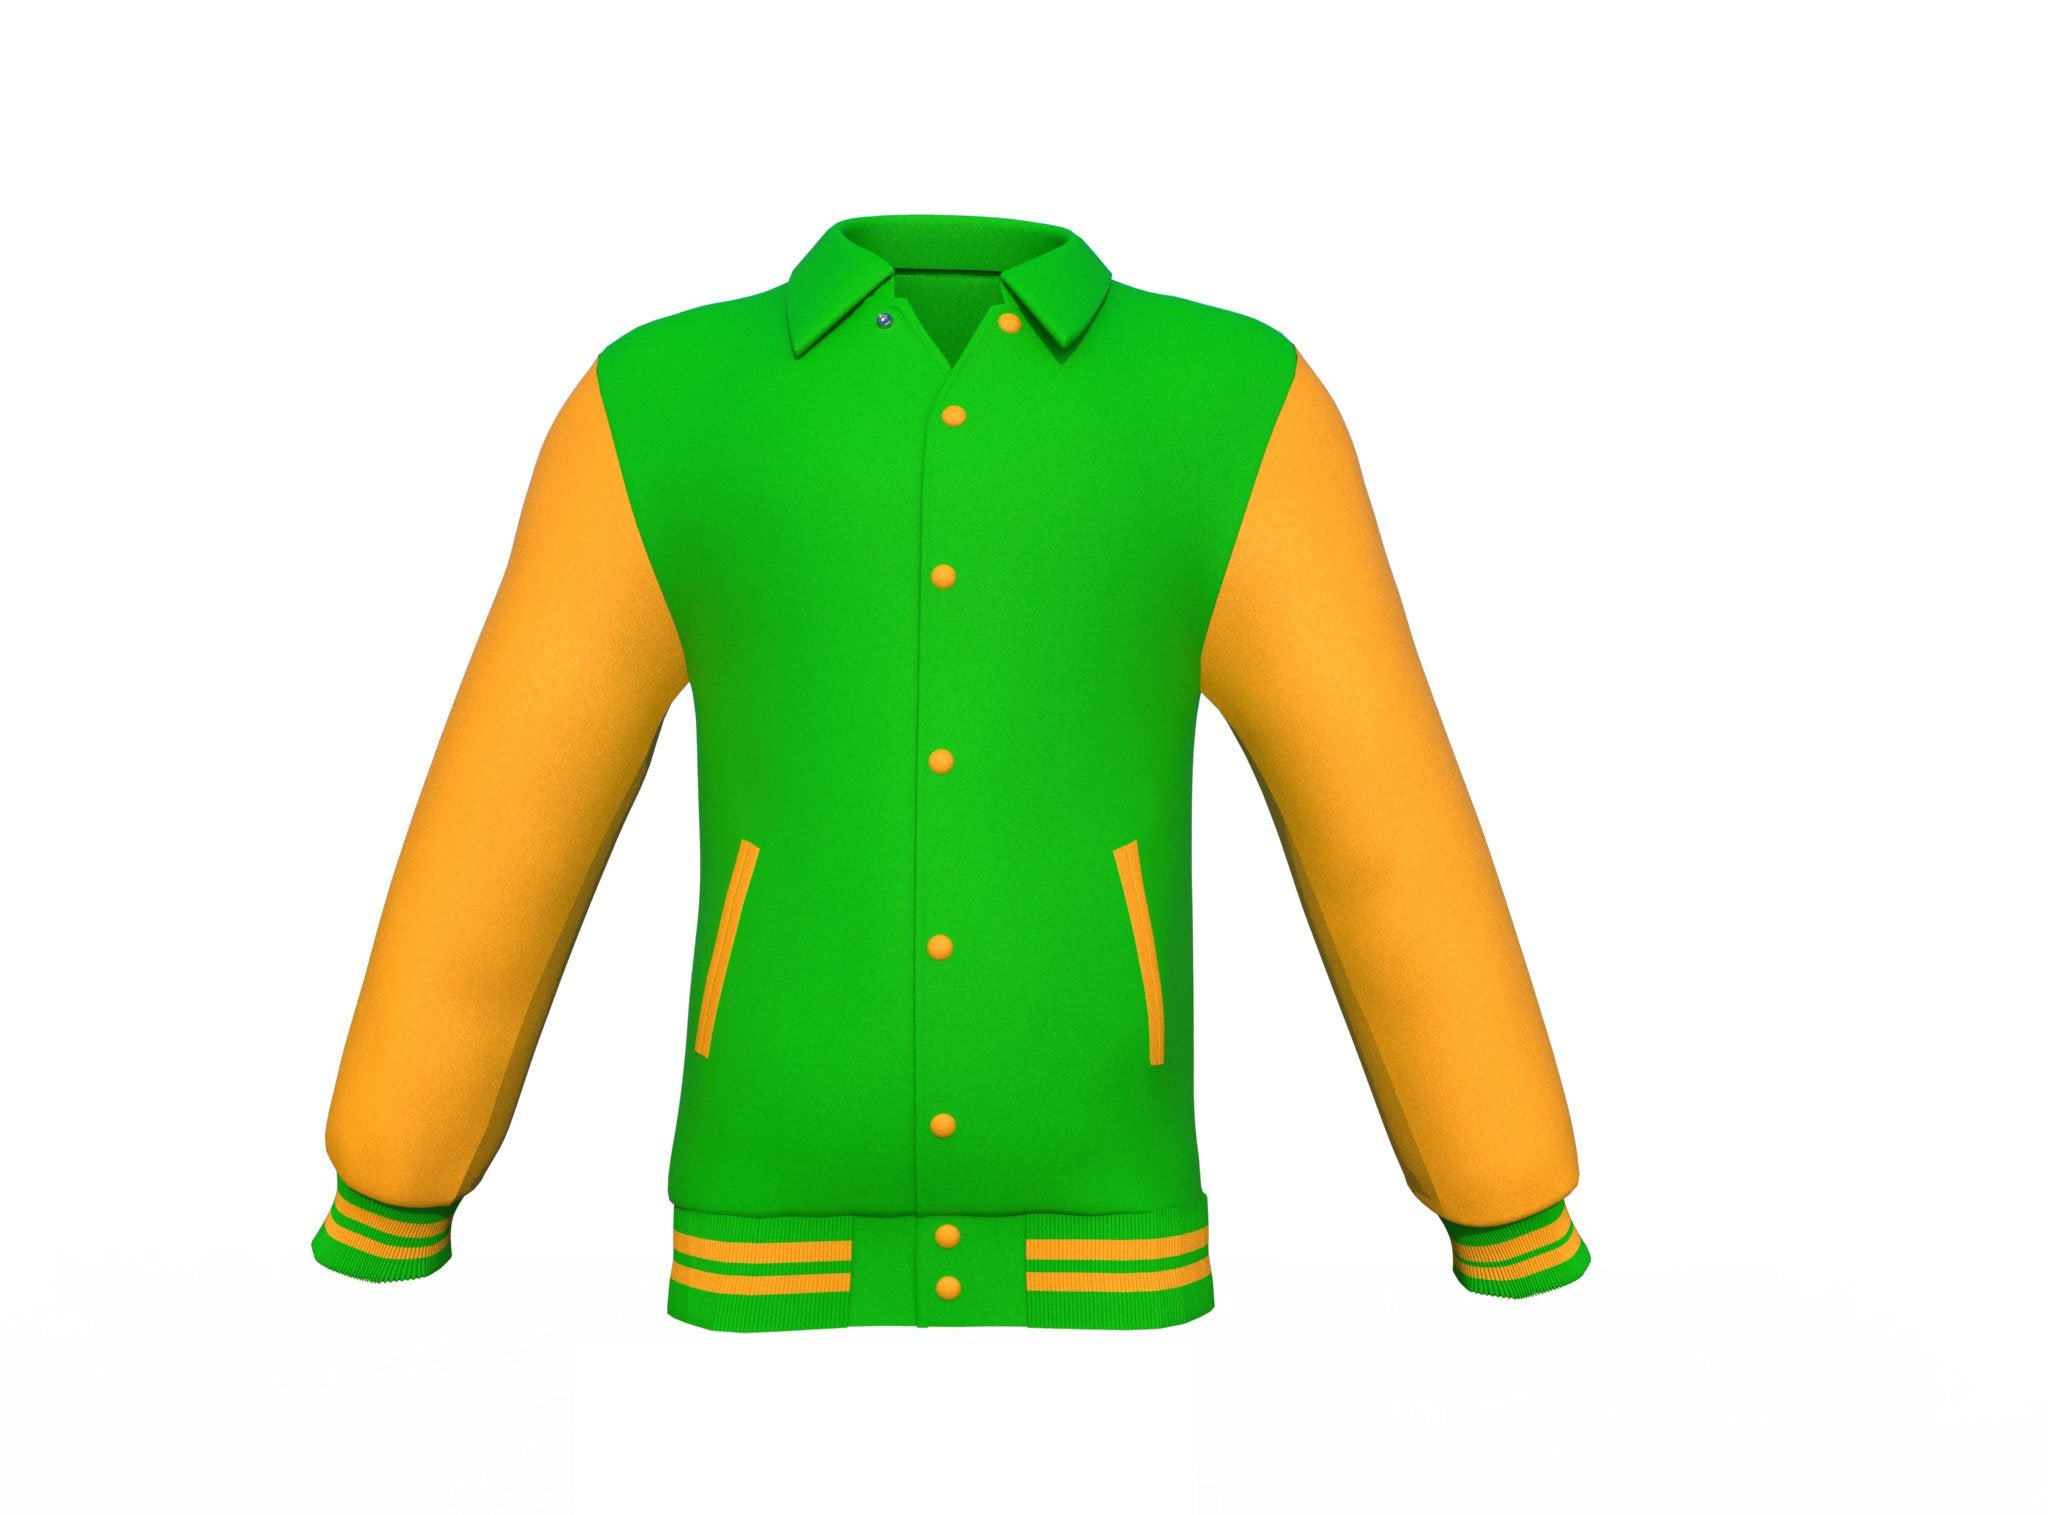 Light Green Varsity Letterman Jacket with Gold Sleeves